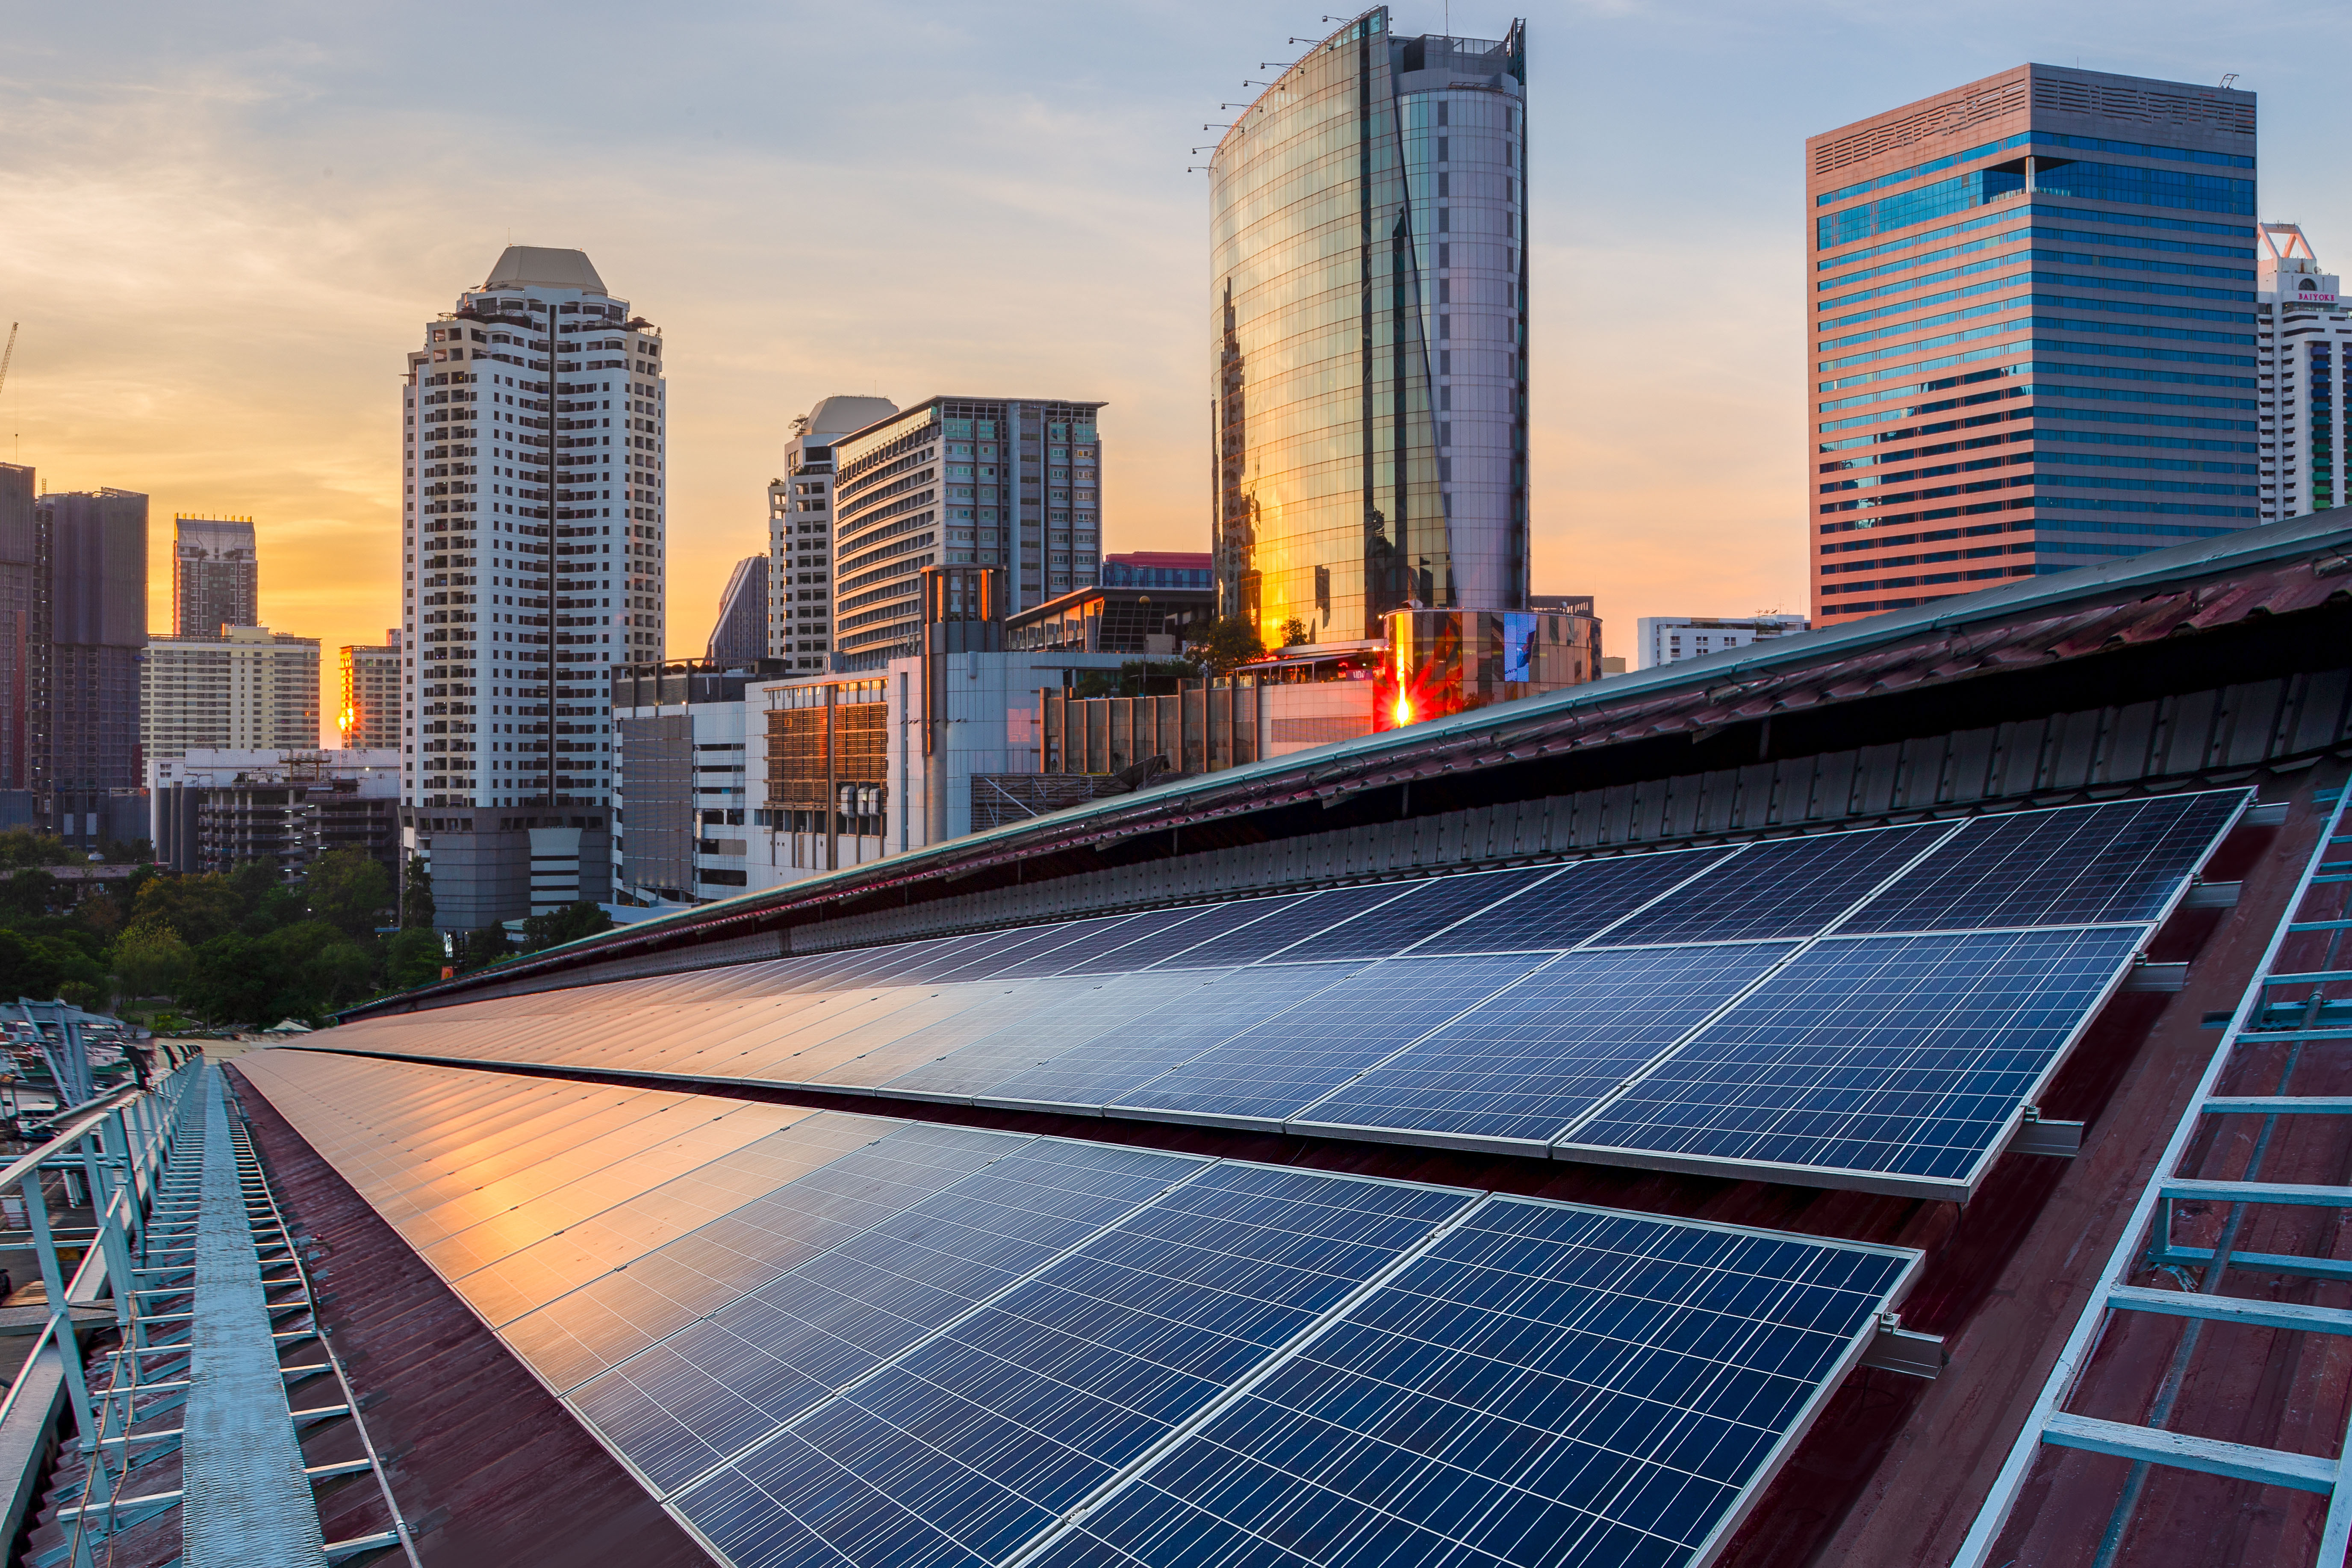 Rooftop Solar Provides Another Alternative to Gas